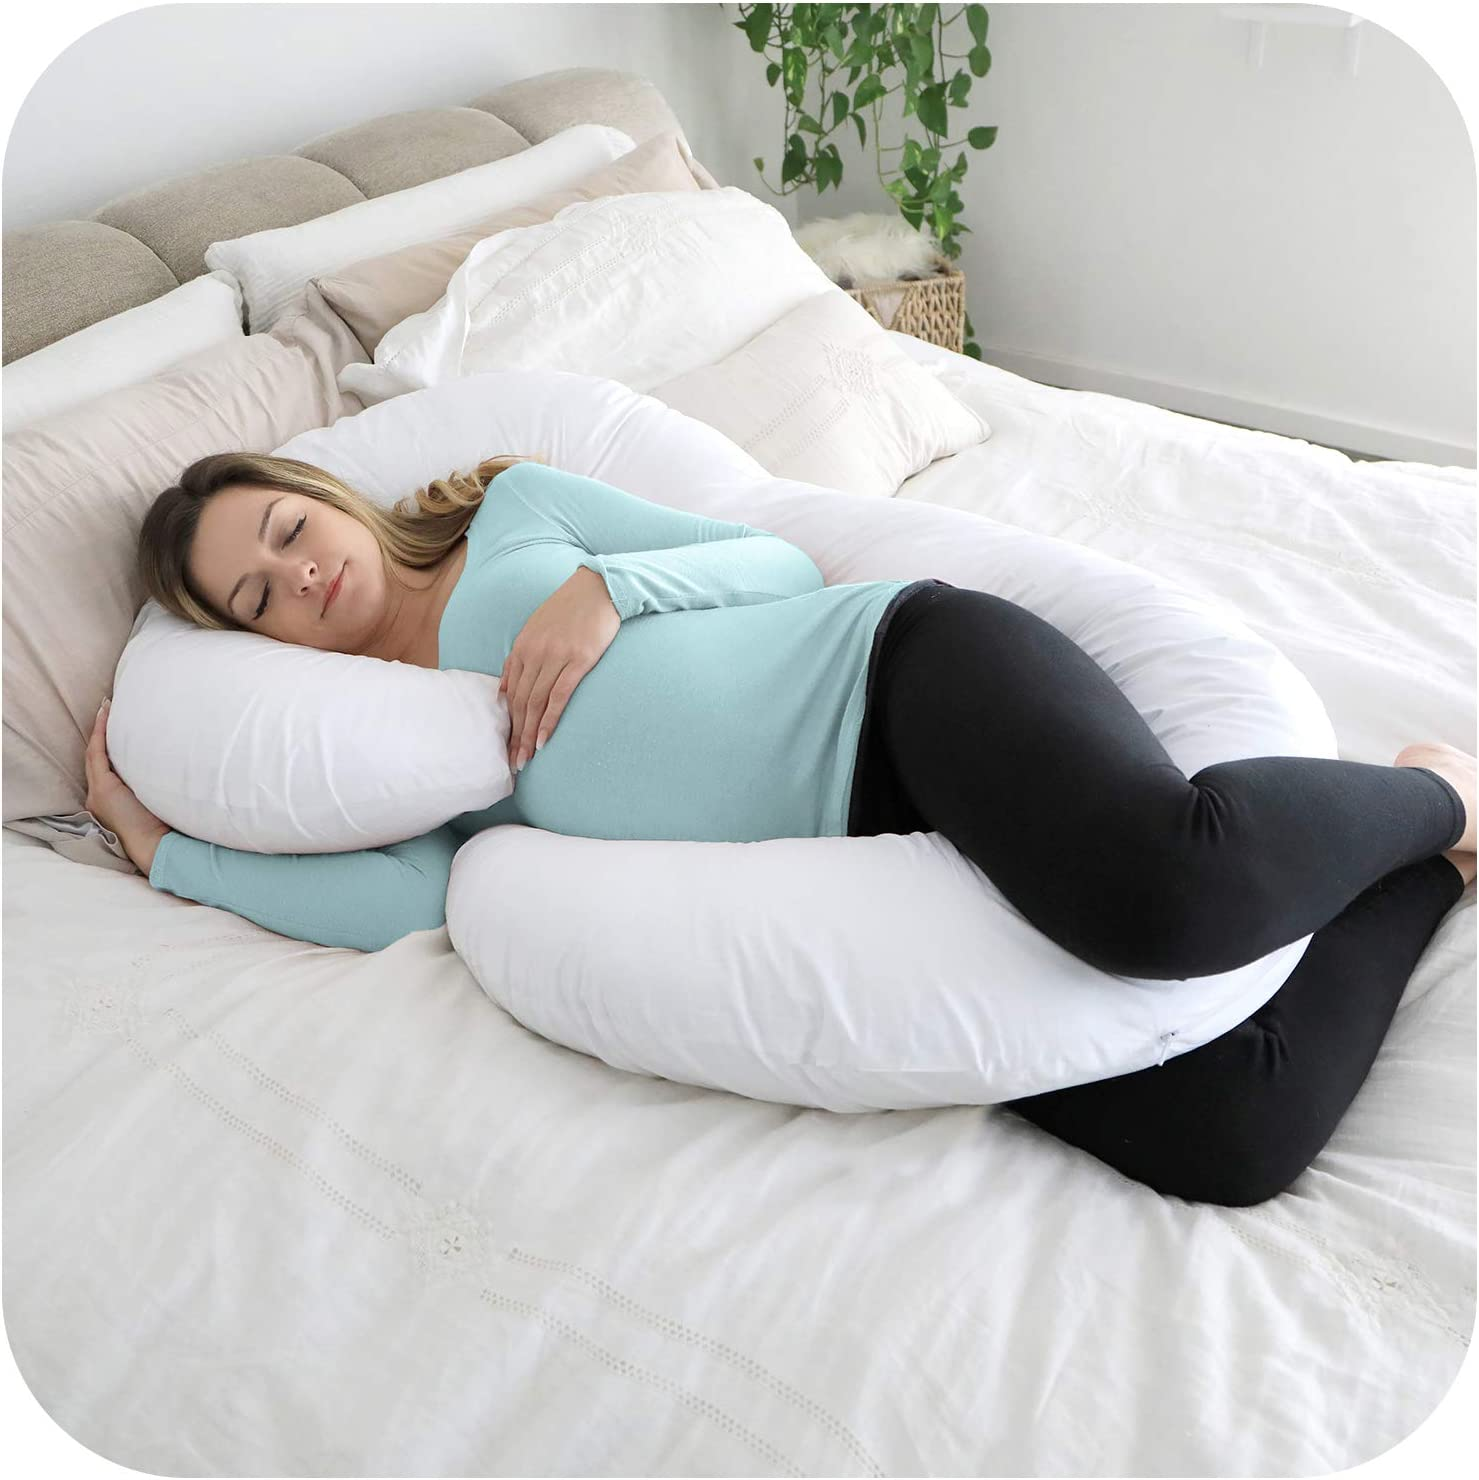 PharMeDoc Mint Total Body Pillow Cover Replacement C Shaped Cover